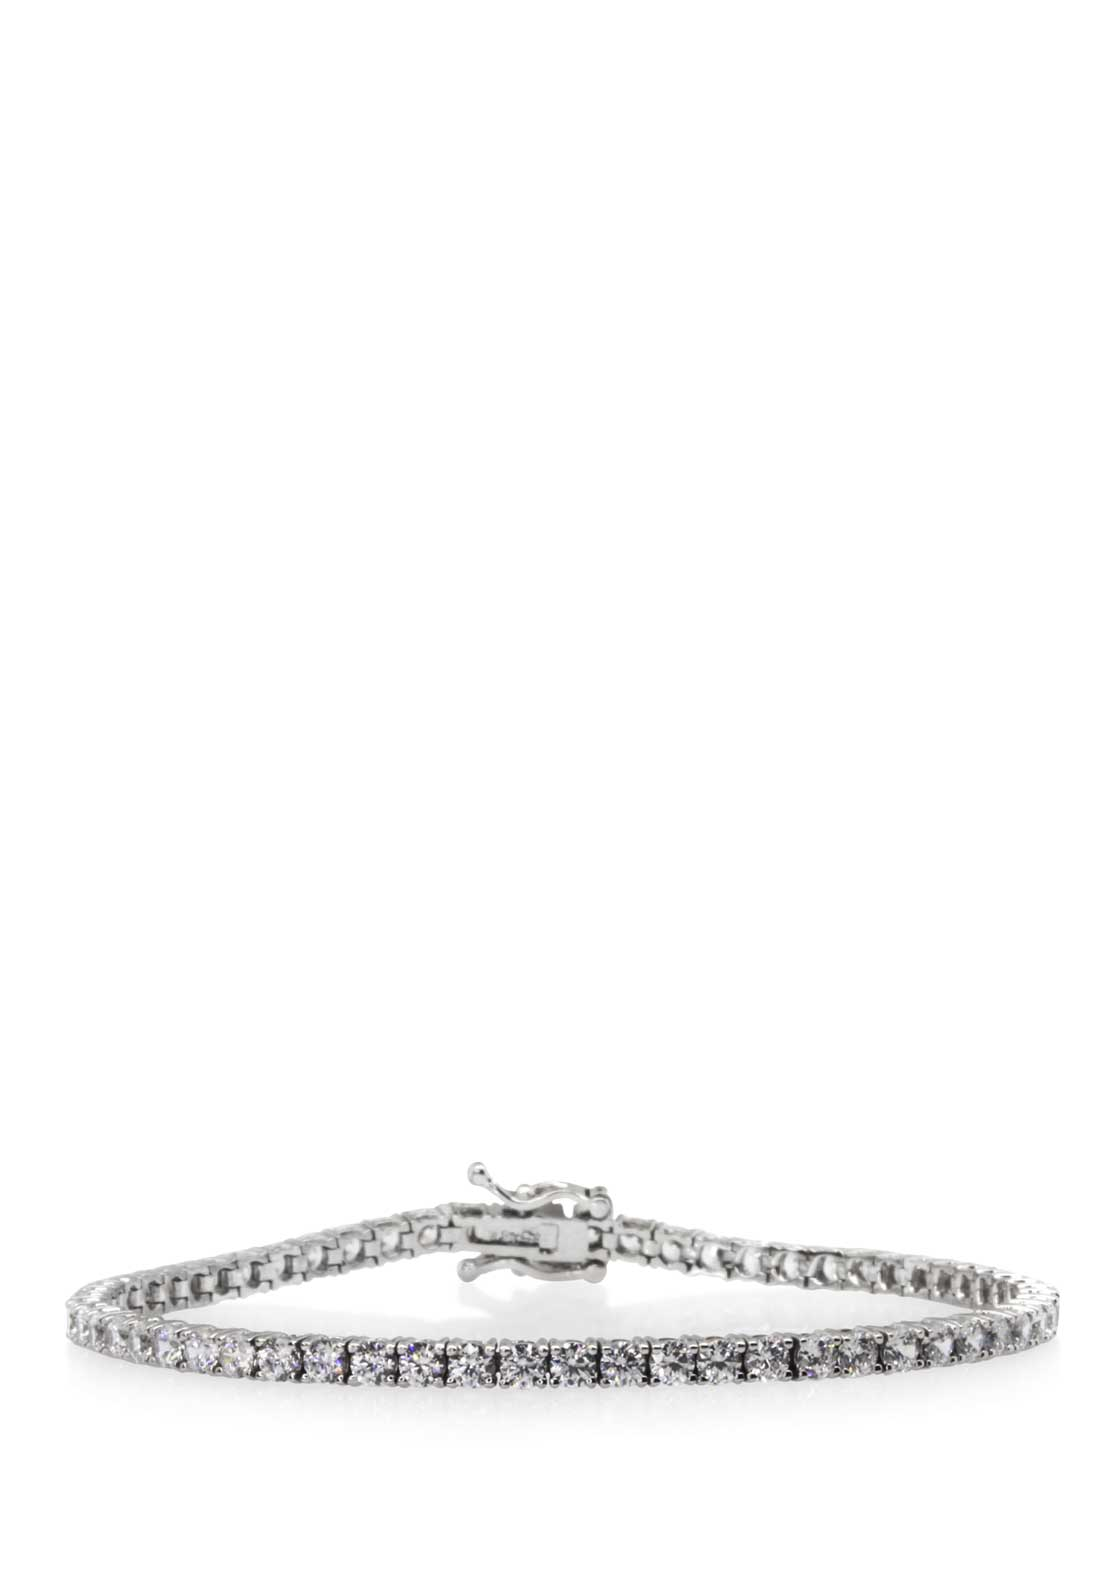 Carat London Brilliant Round Cut Tennis Bracelet, Sterling Silver